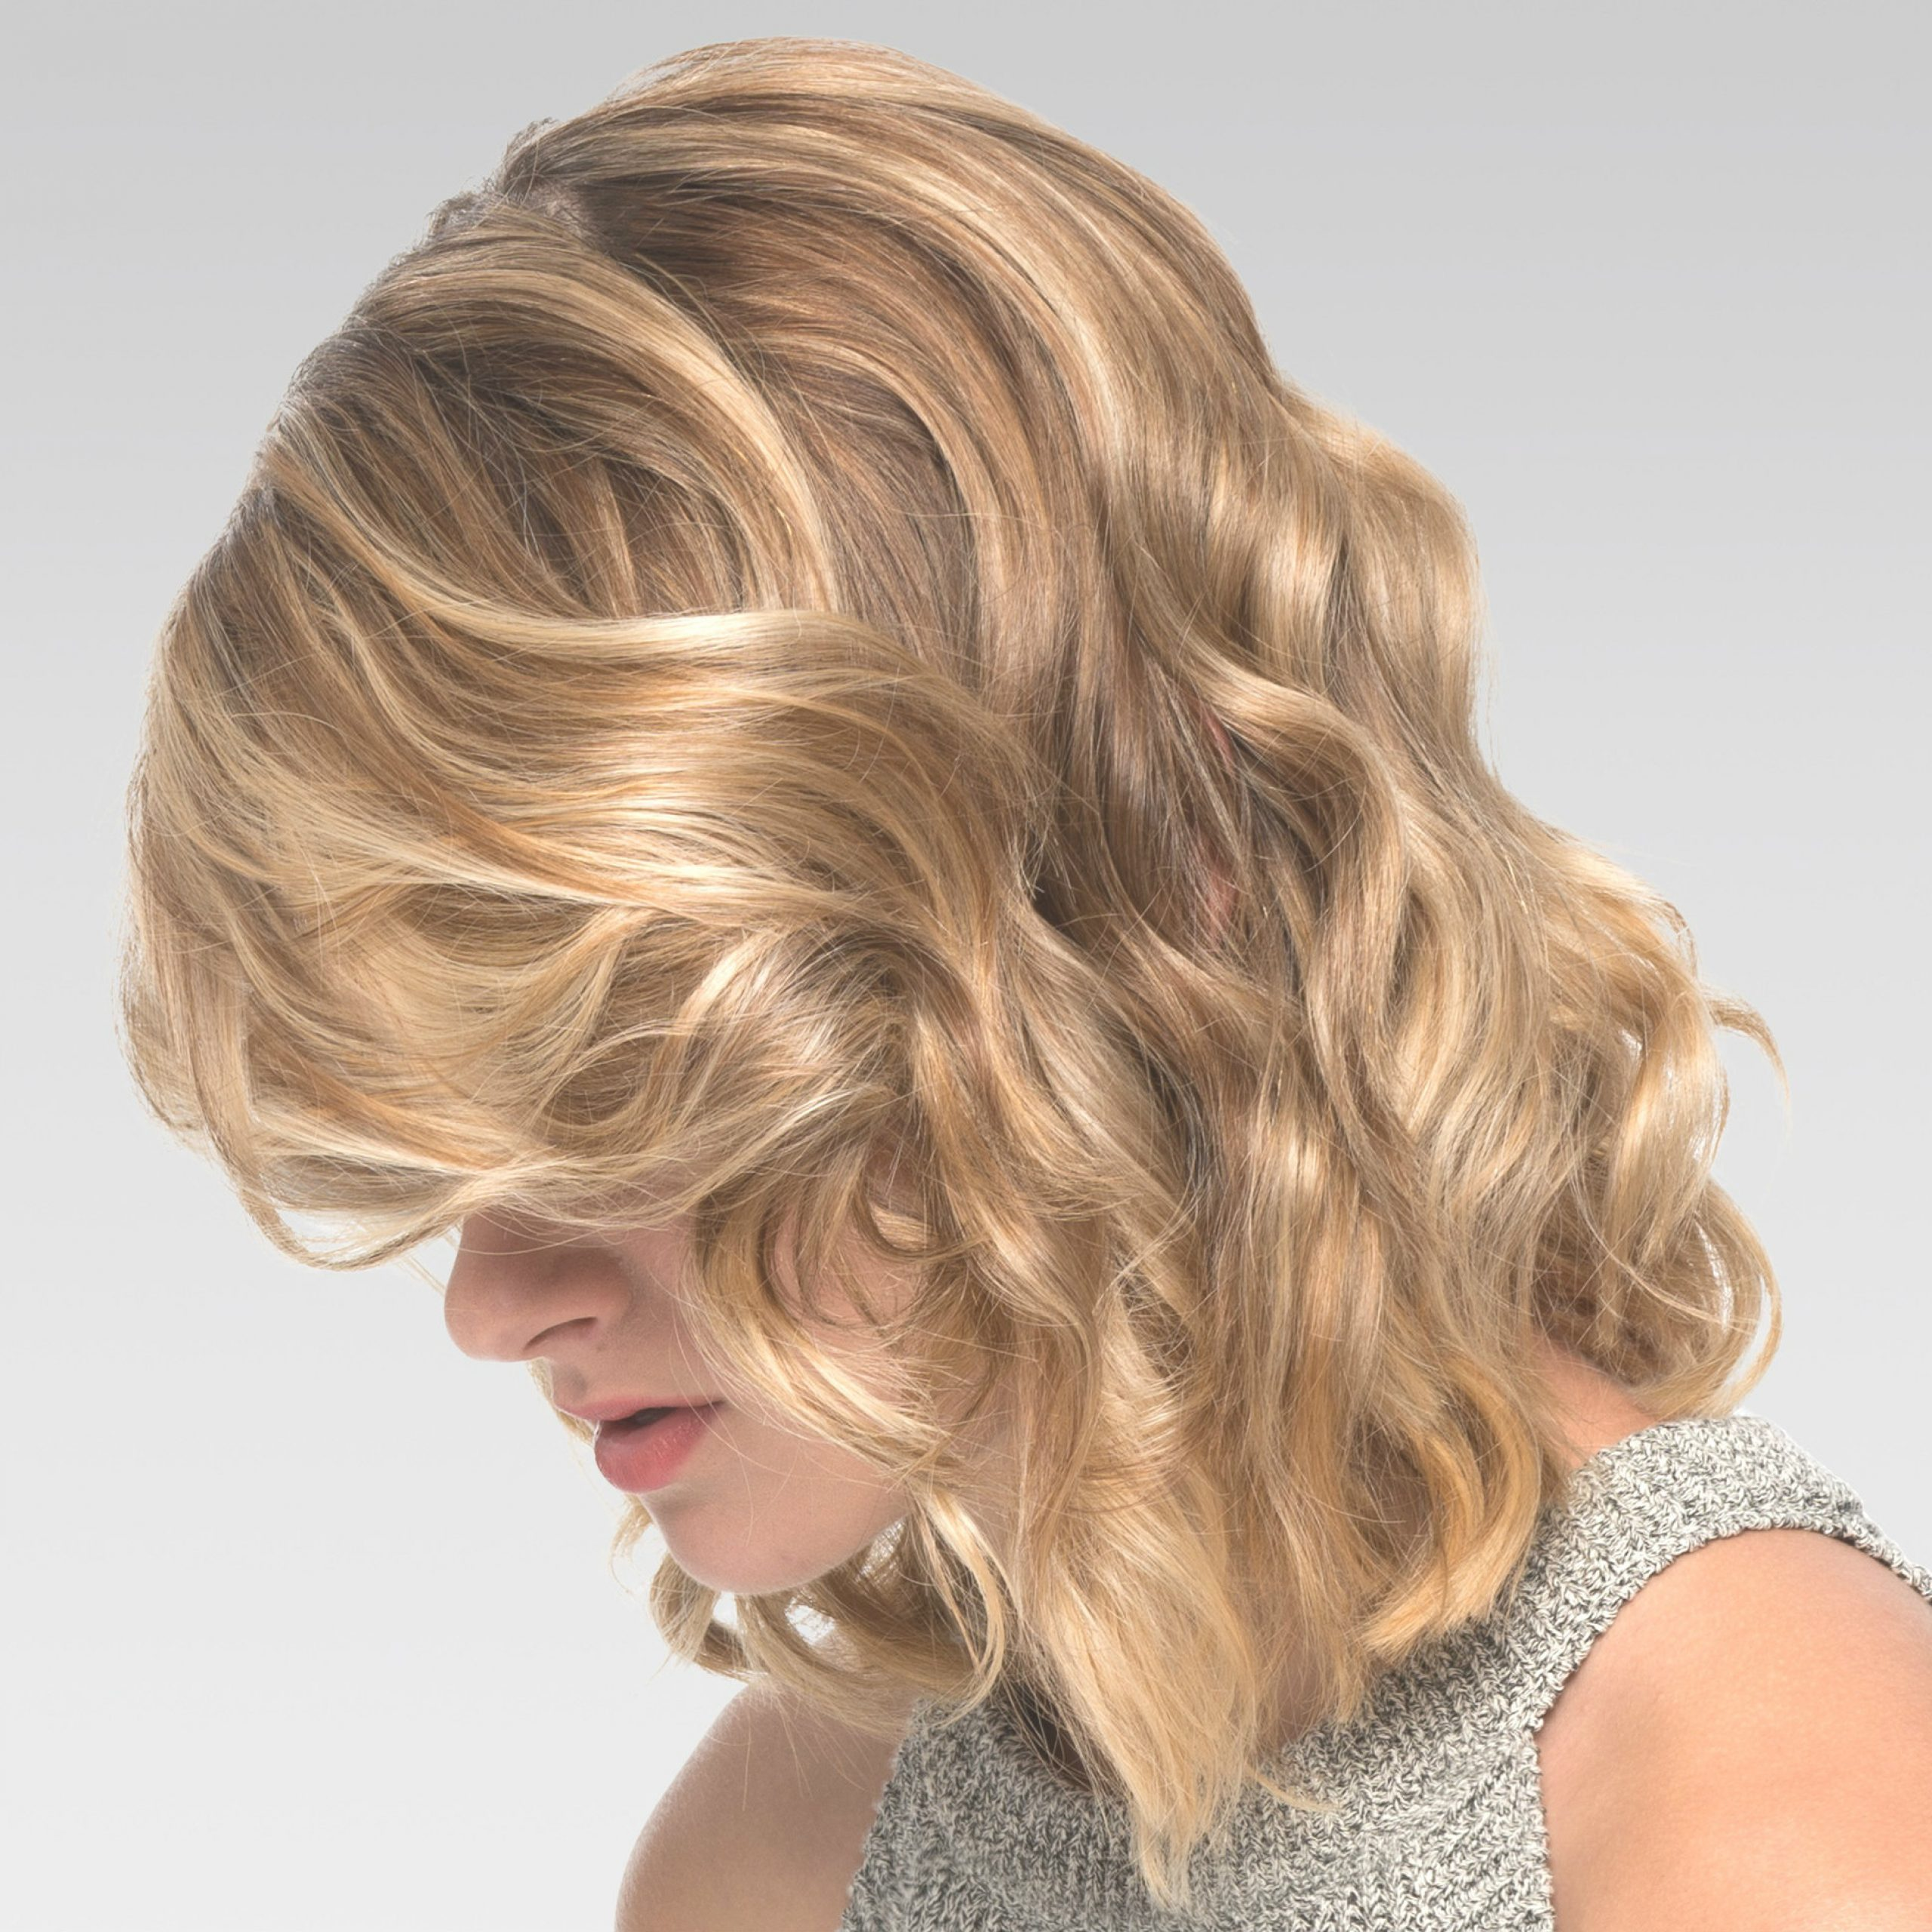 Cascading: For Short, Medium And Long Hair – Minnesota Intended For Well Known Elongated Feathered Haircuts (View 9 of 20)